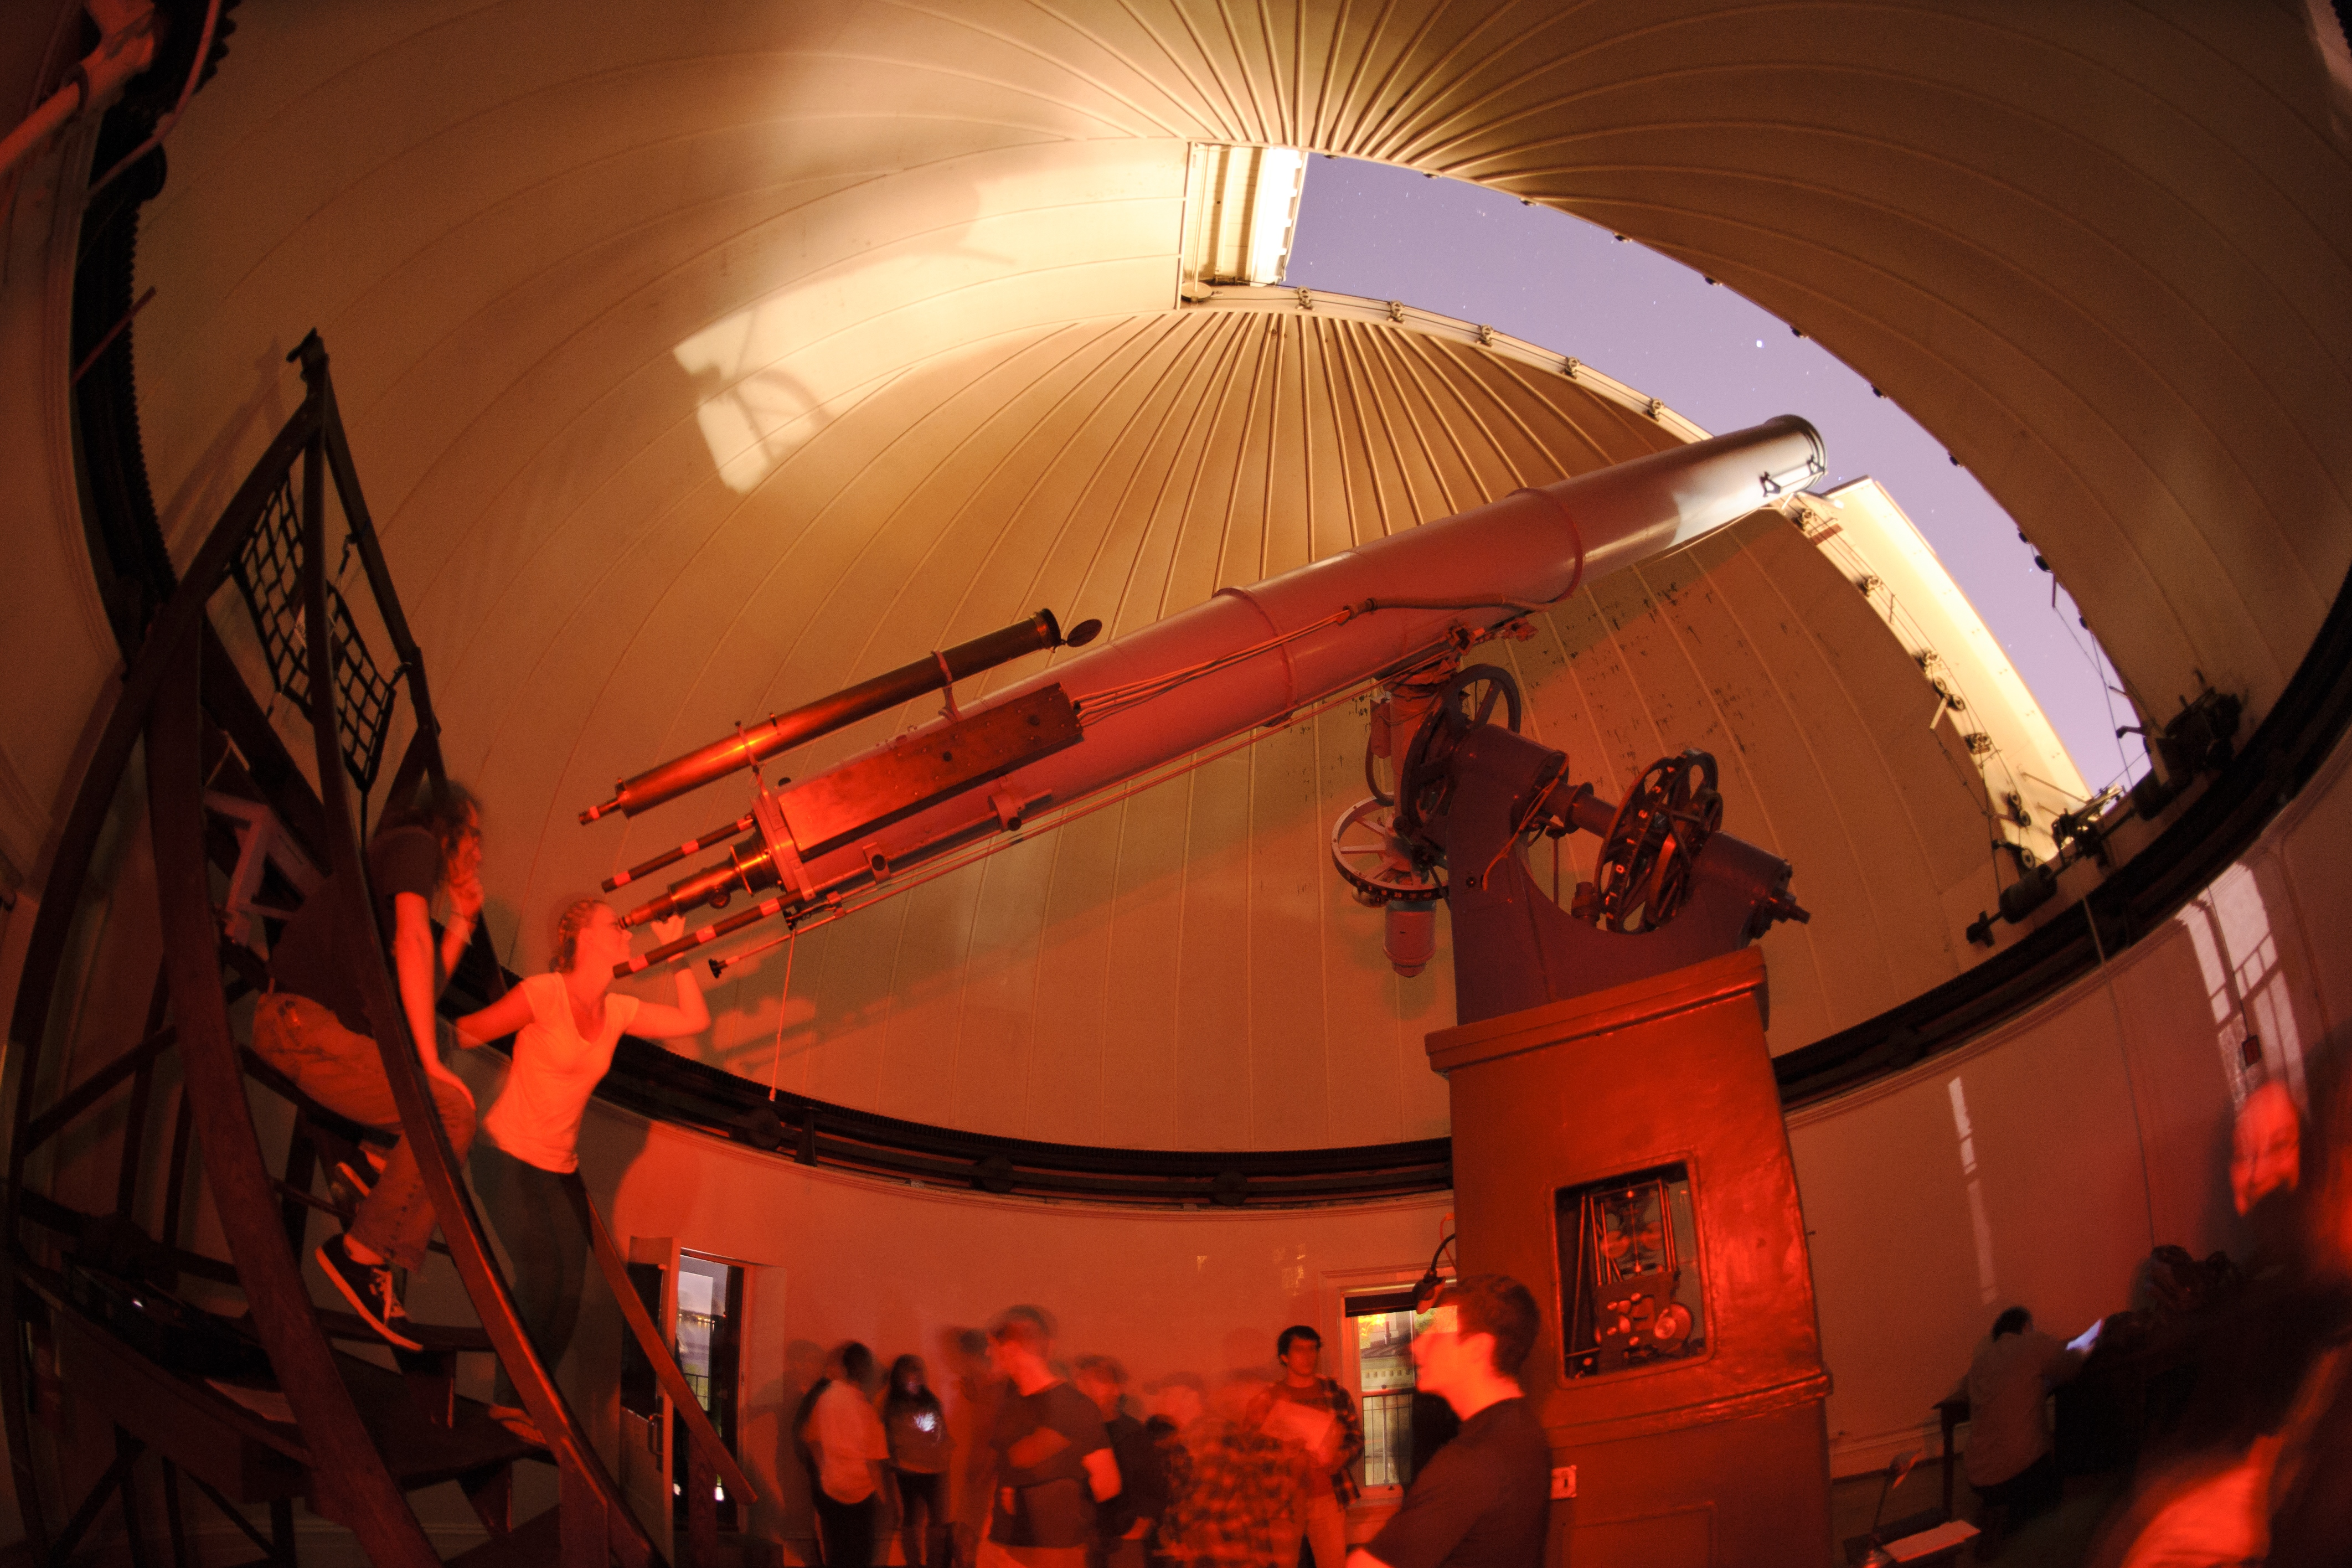 After long hiatus, Washburn Observatory public viewing to resume